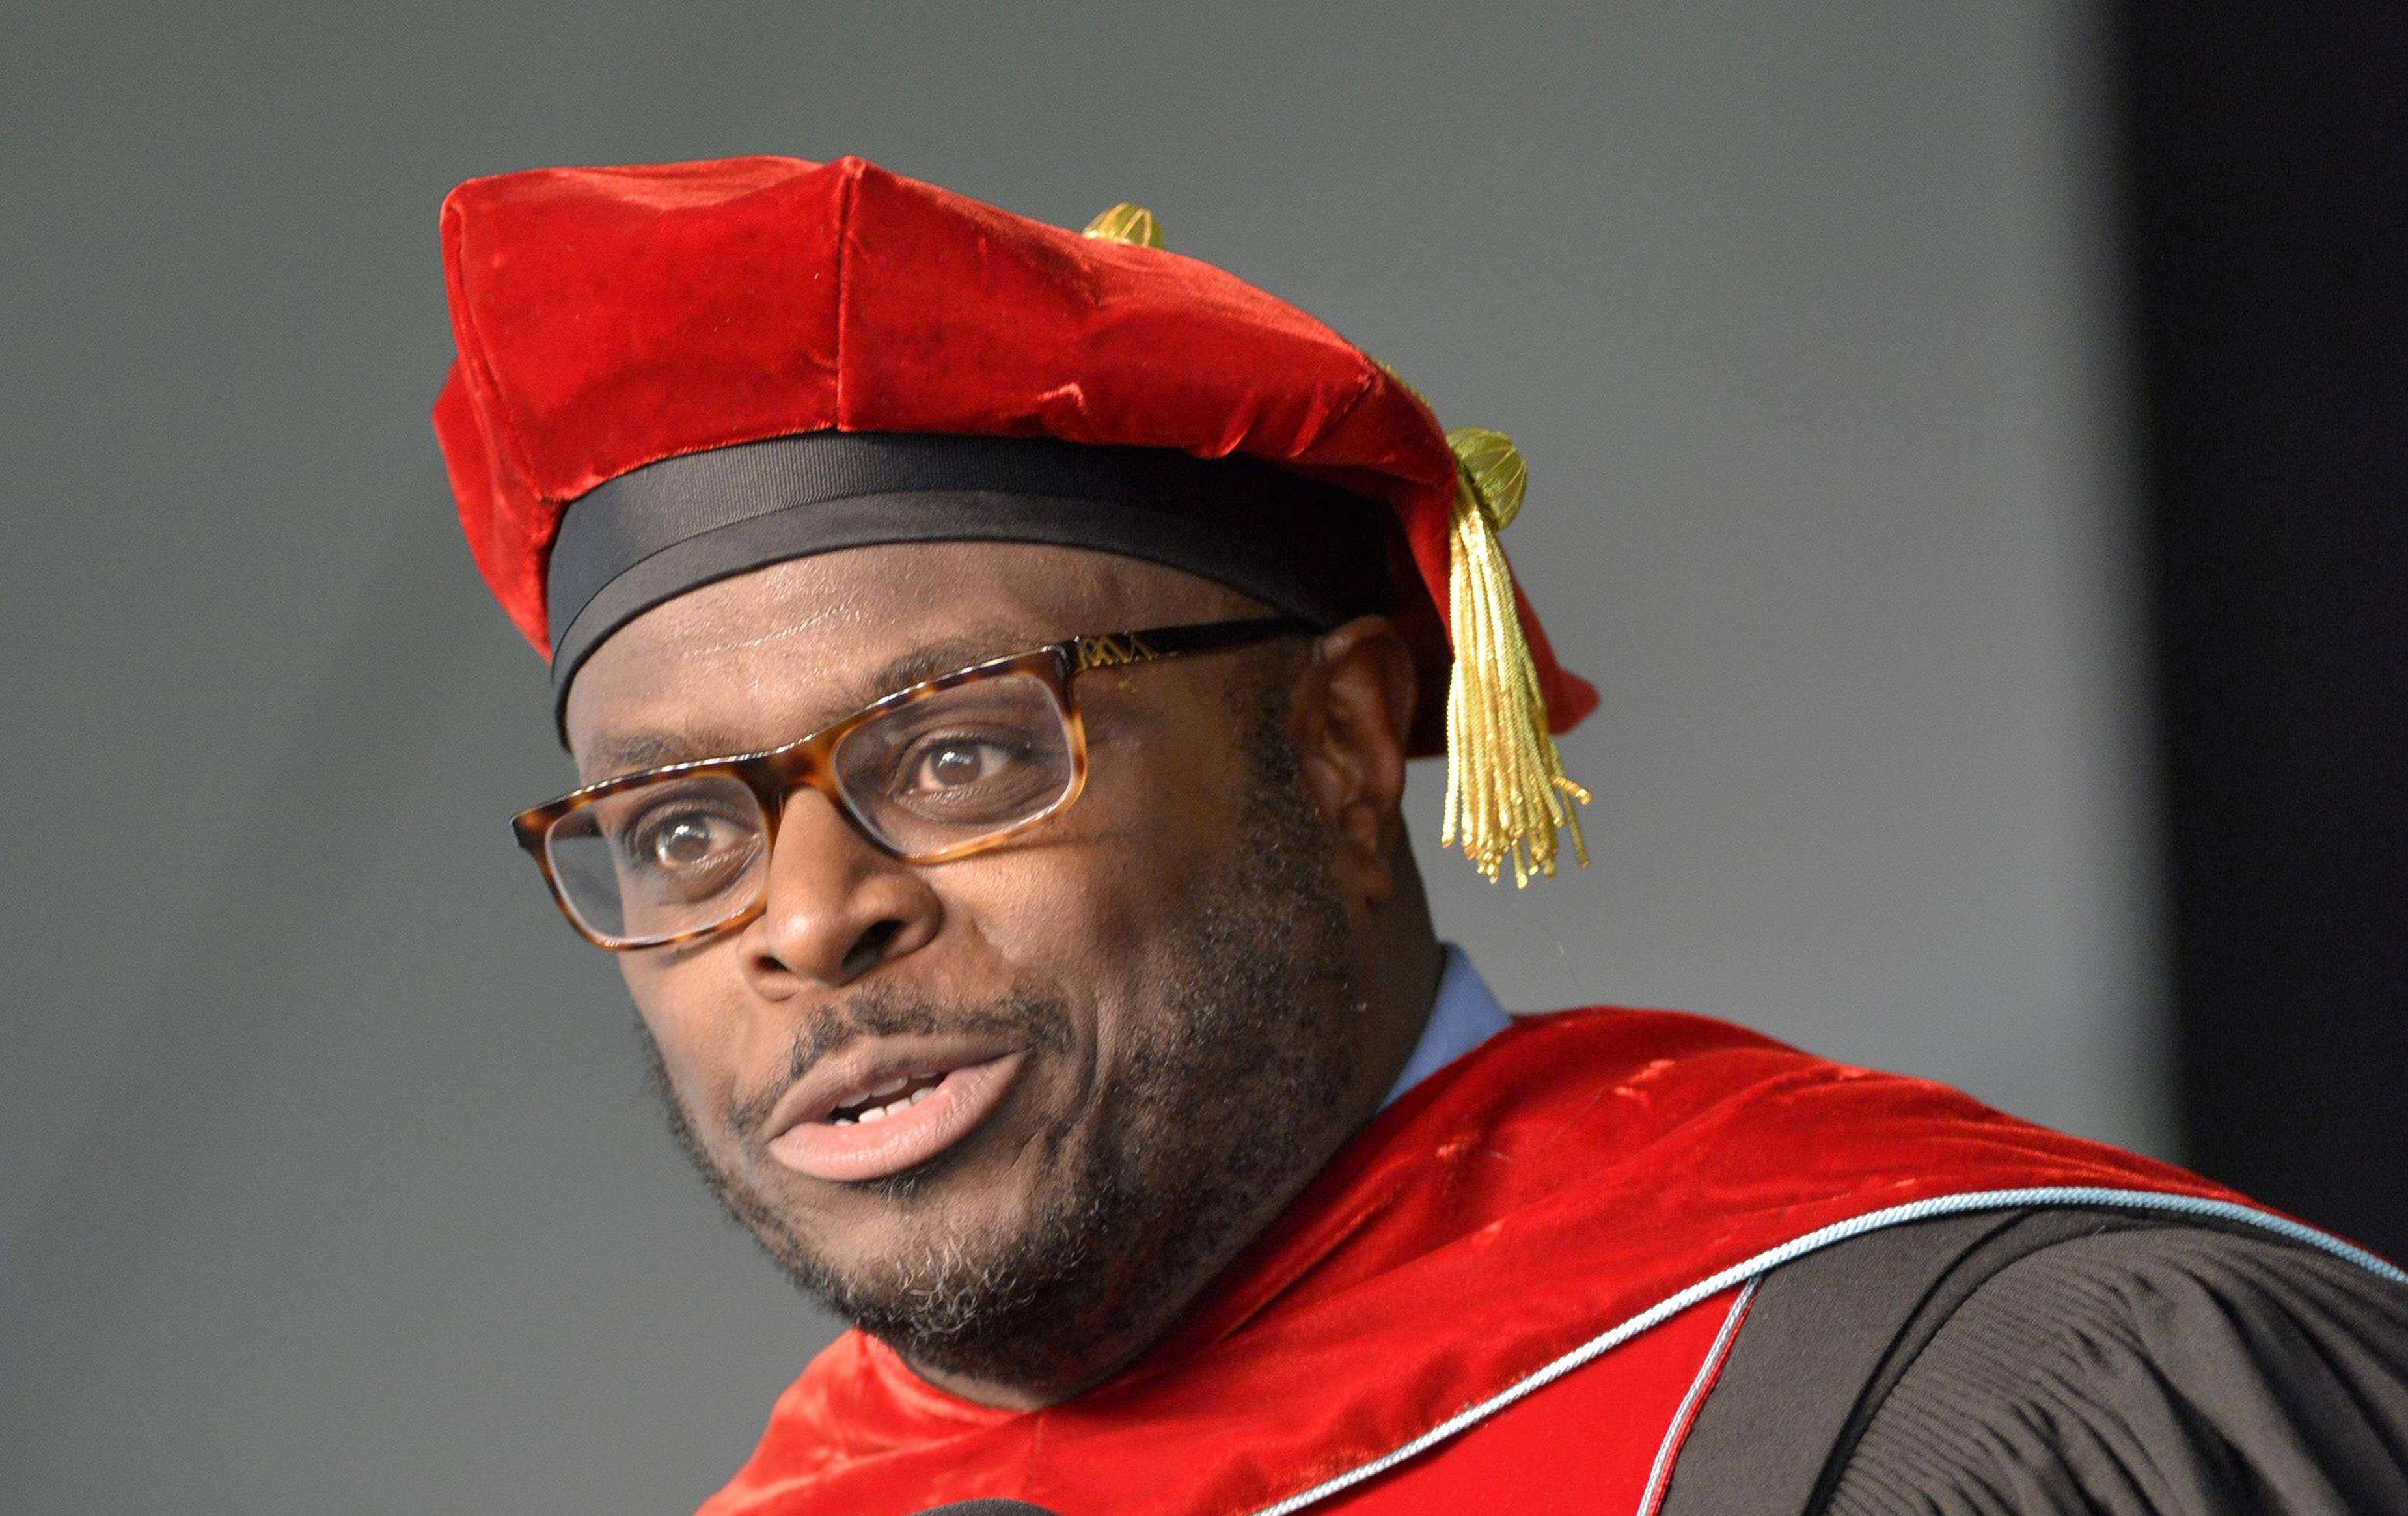 Dr. Tony Allen began his tenure as Delaware State University 12th president on Jan. 1